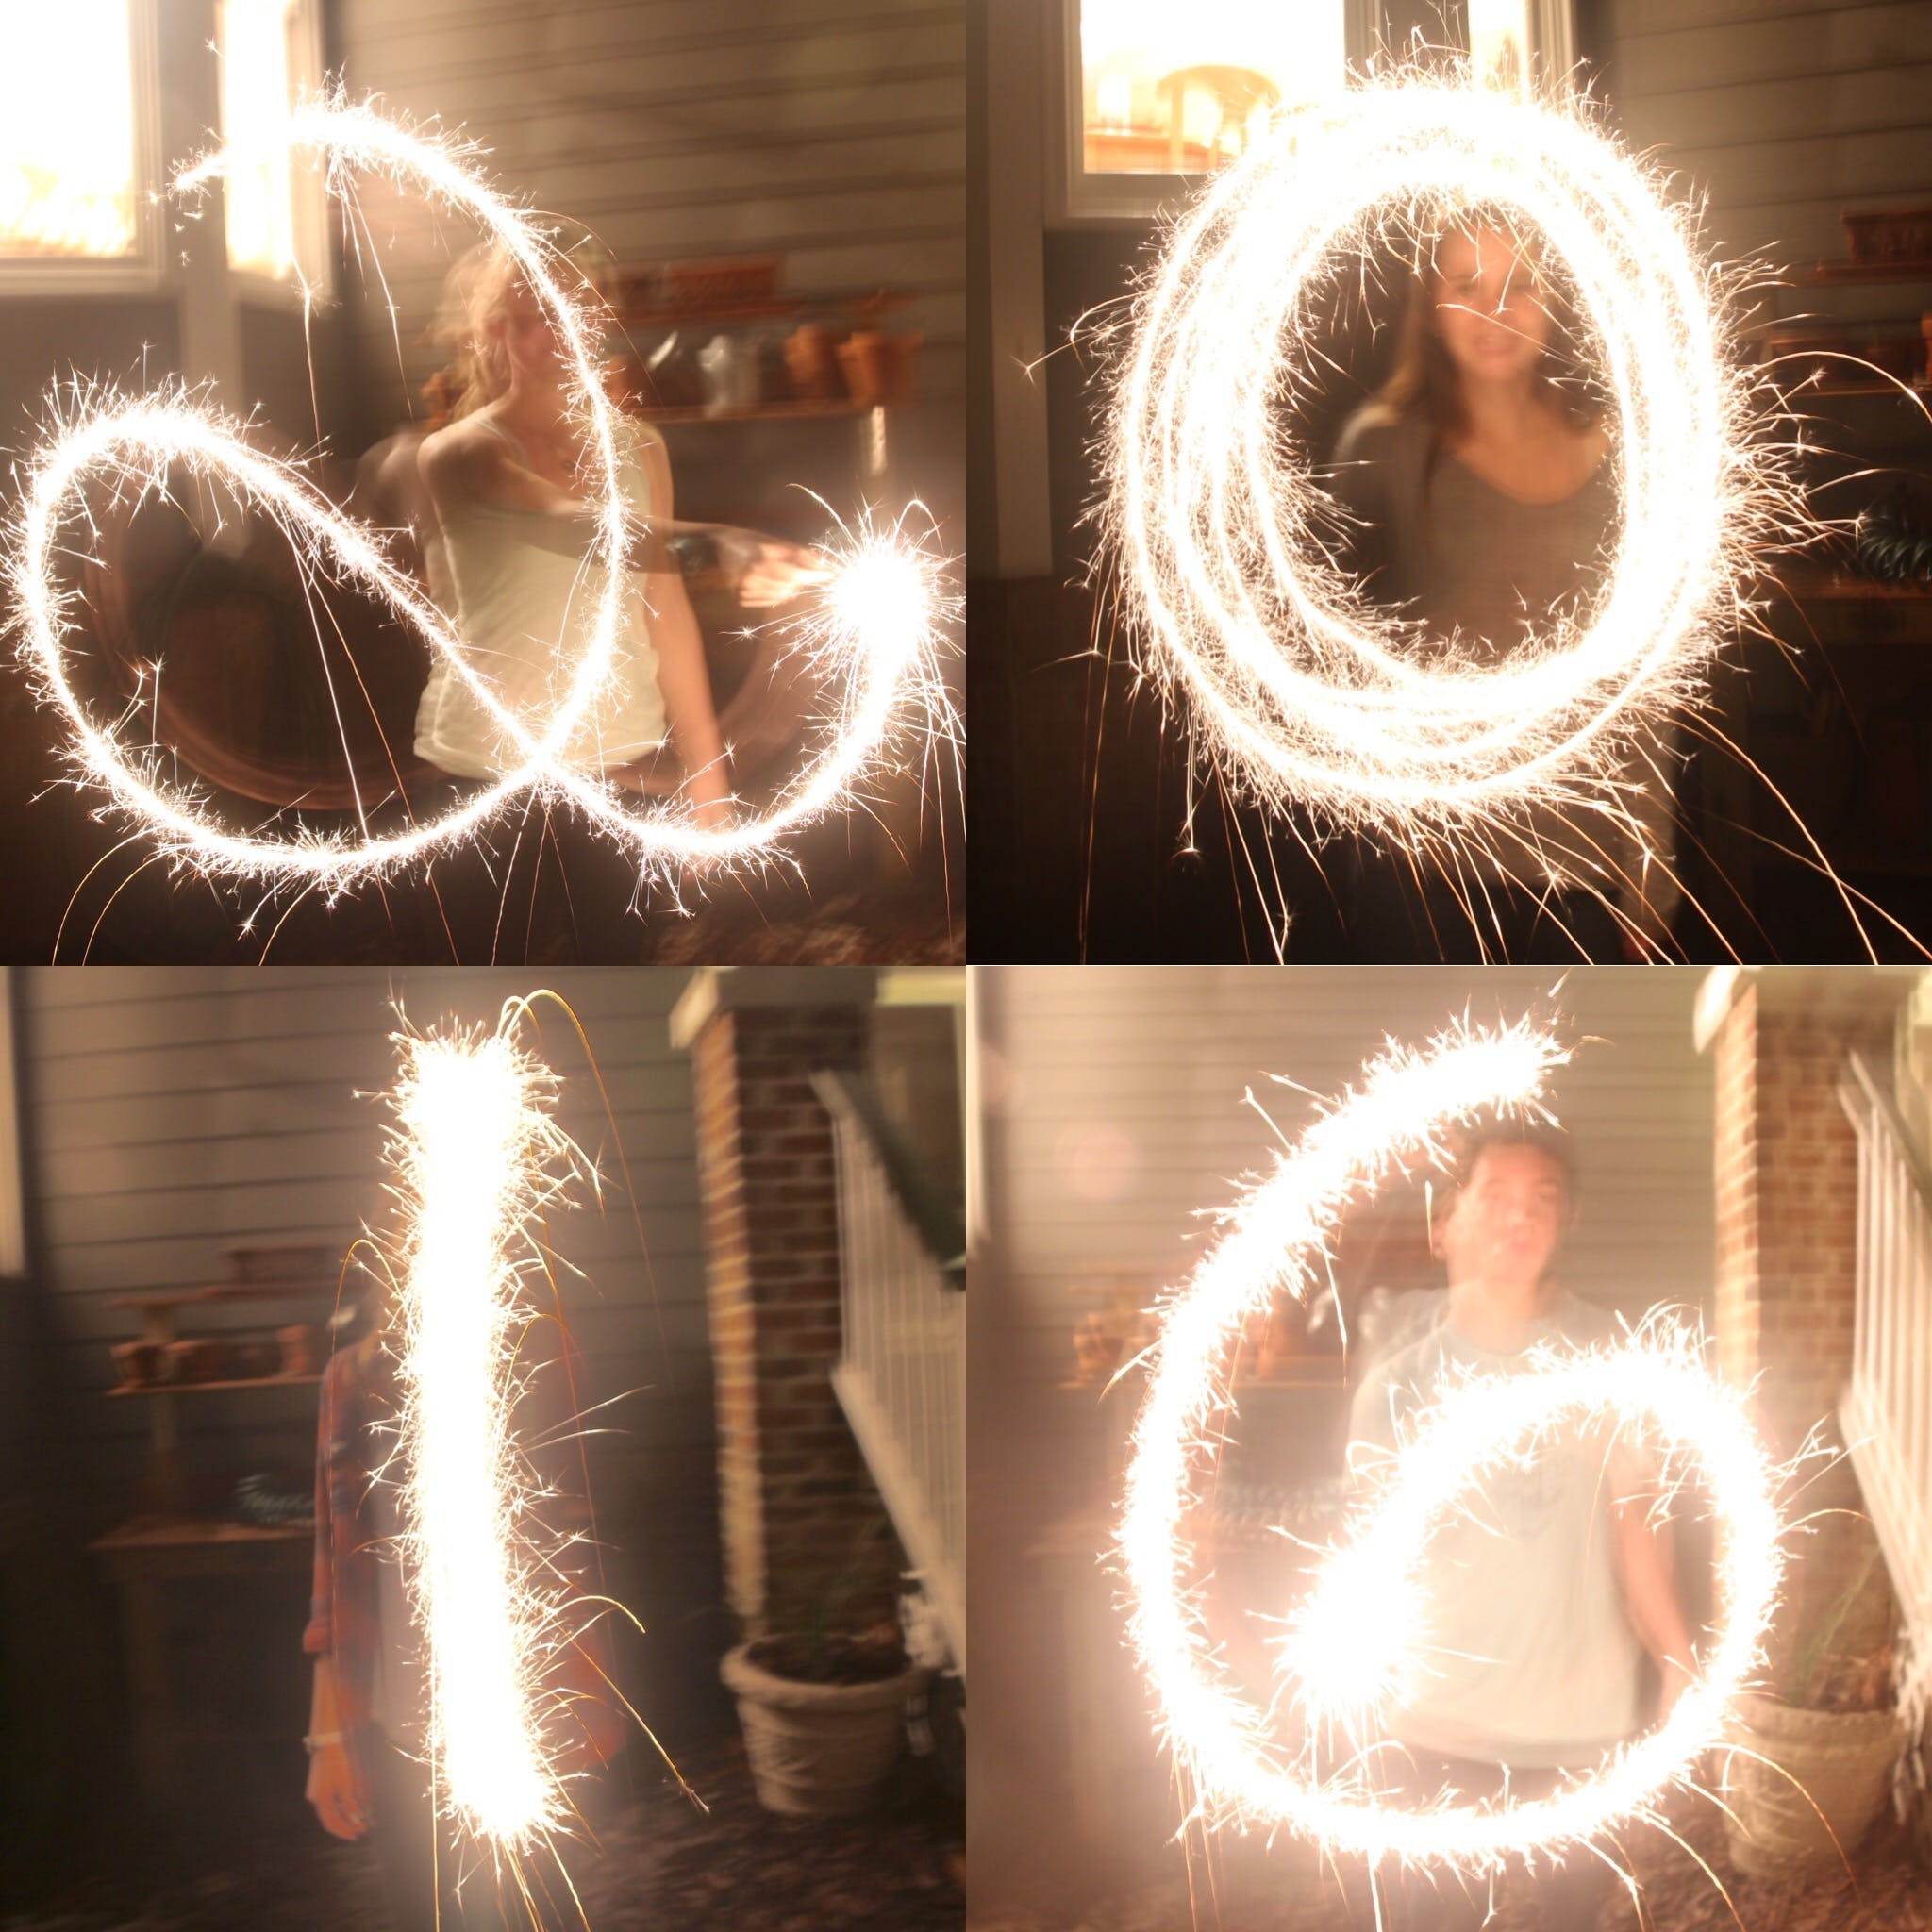 Free stock photo of 2016, new year, sparklers, sparks